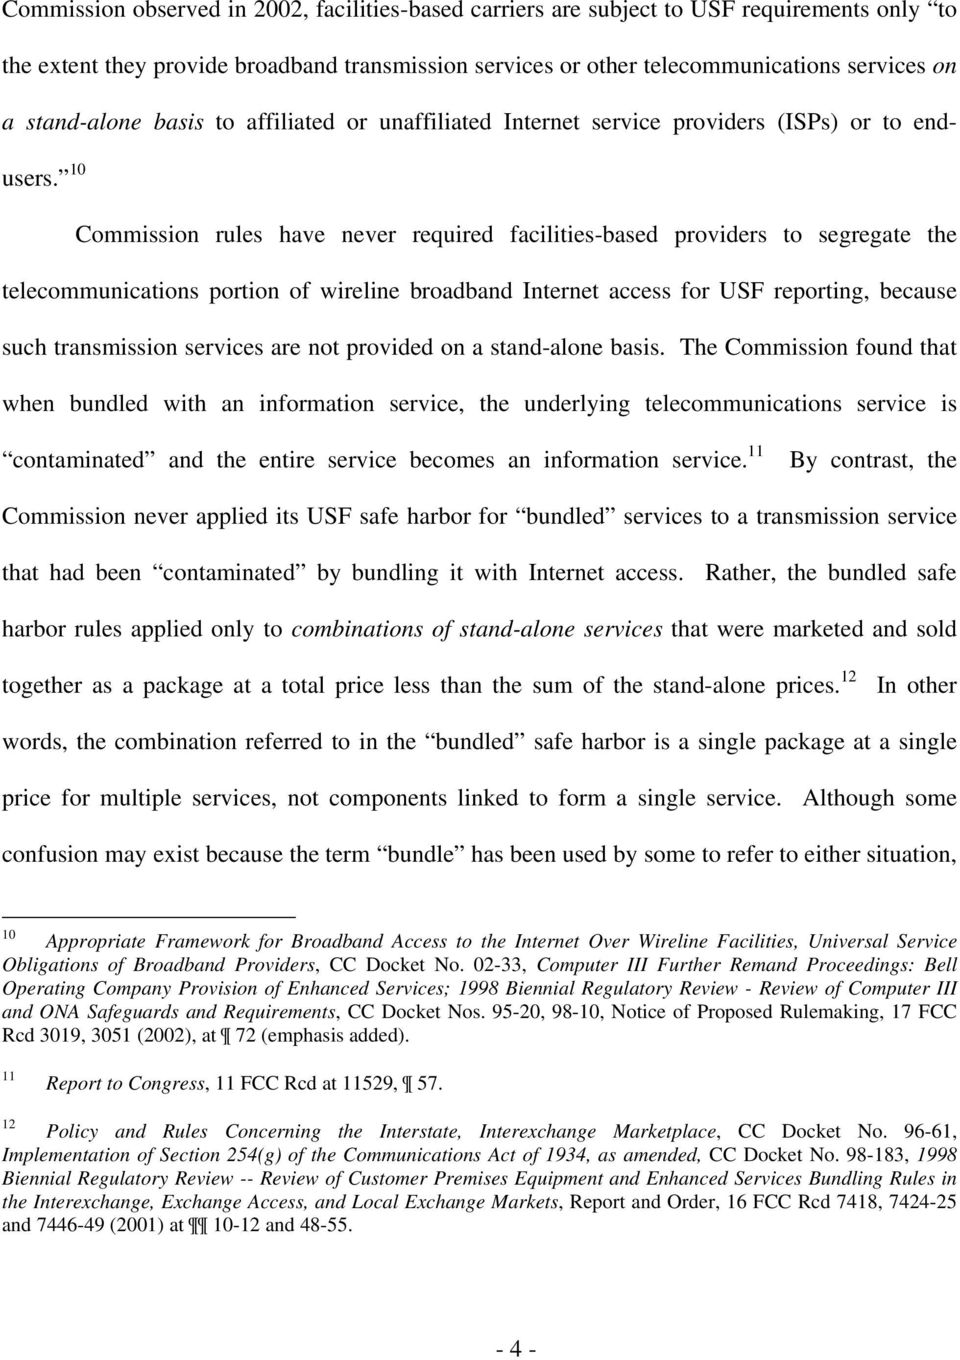 10 Commission rules have never required facilities-based providers to segregate the telecommunications portion of wireline broadband Internet access for USF reporting, because such transmission